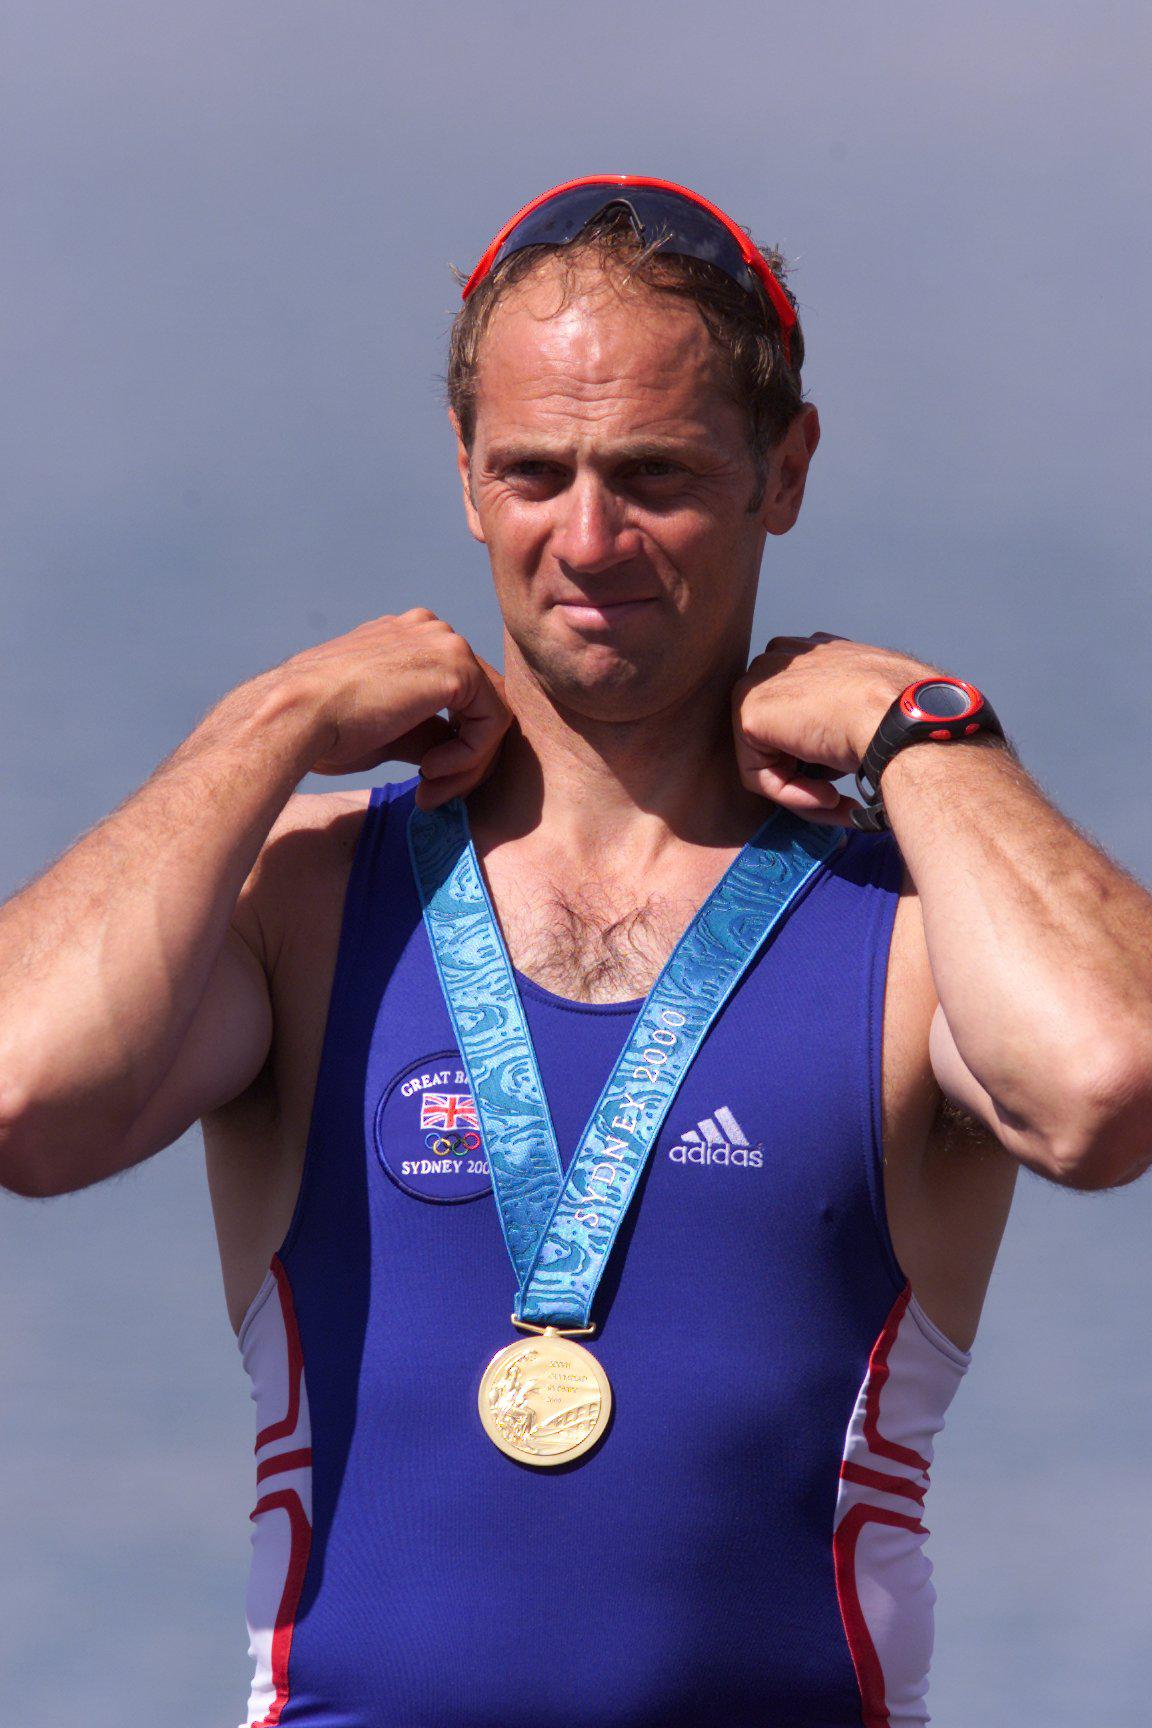 Steve Redgrave famously said in 1996 after winning Olympic gold that people could 'shoot him' if he went near a boat again